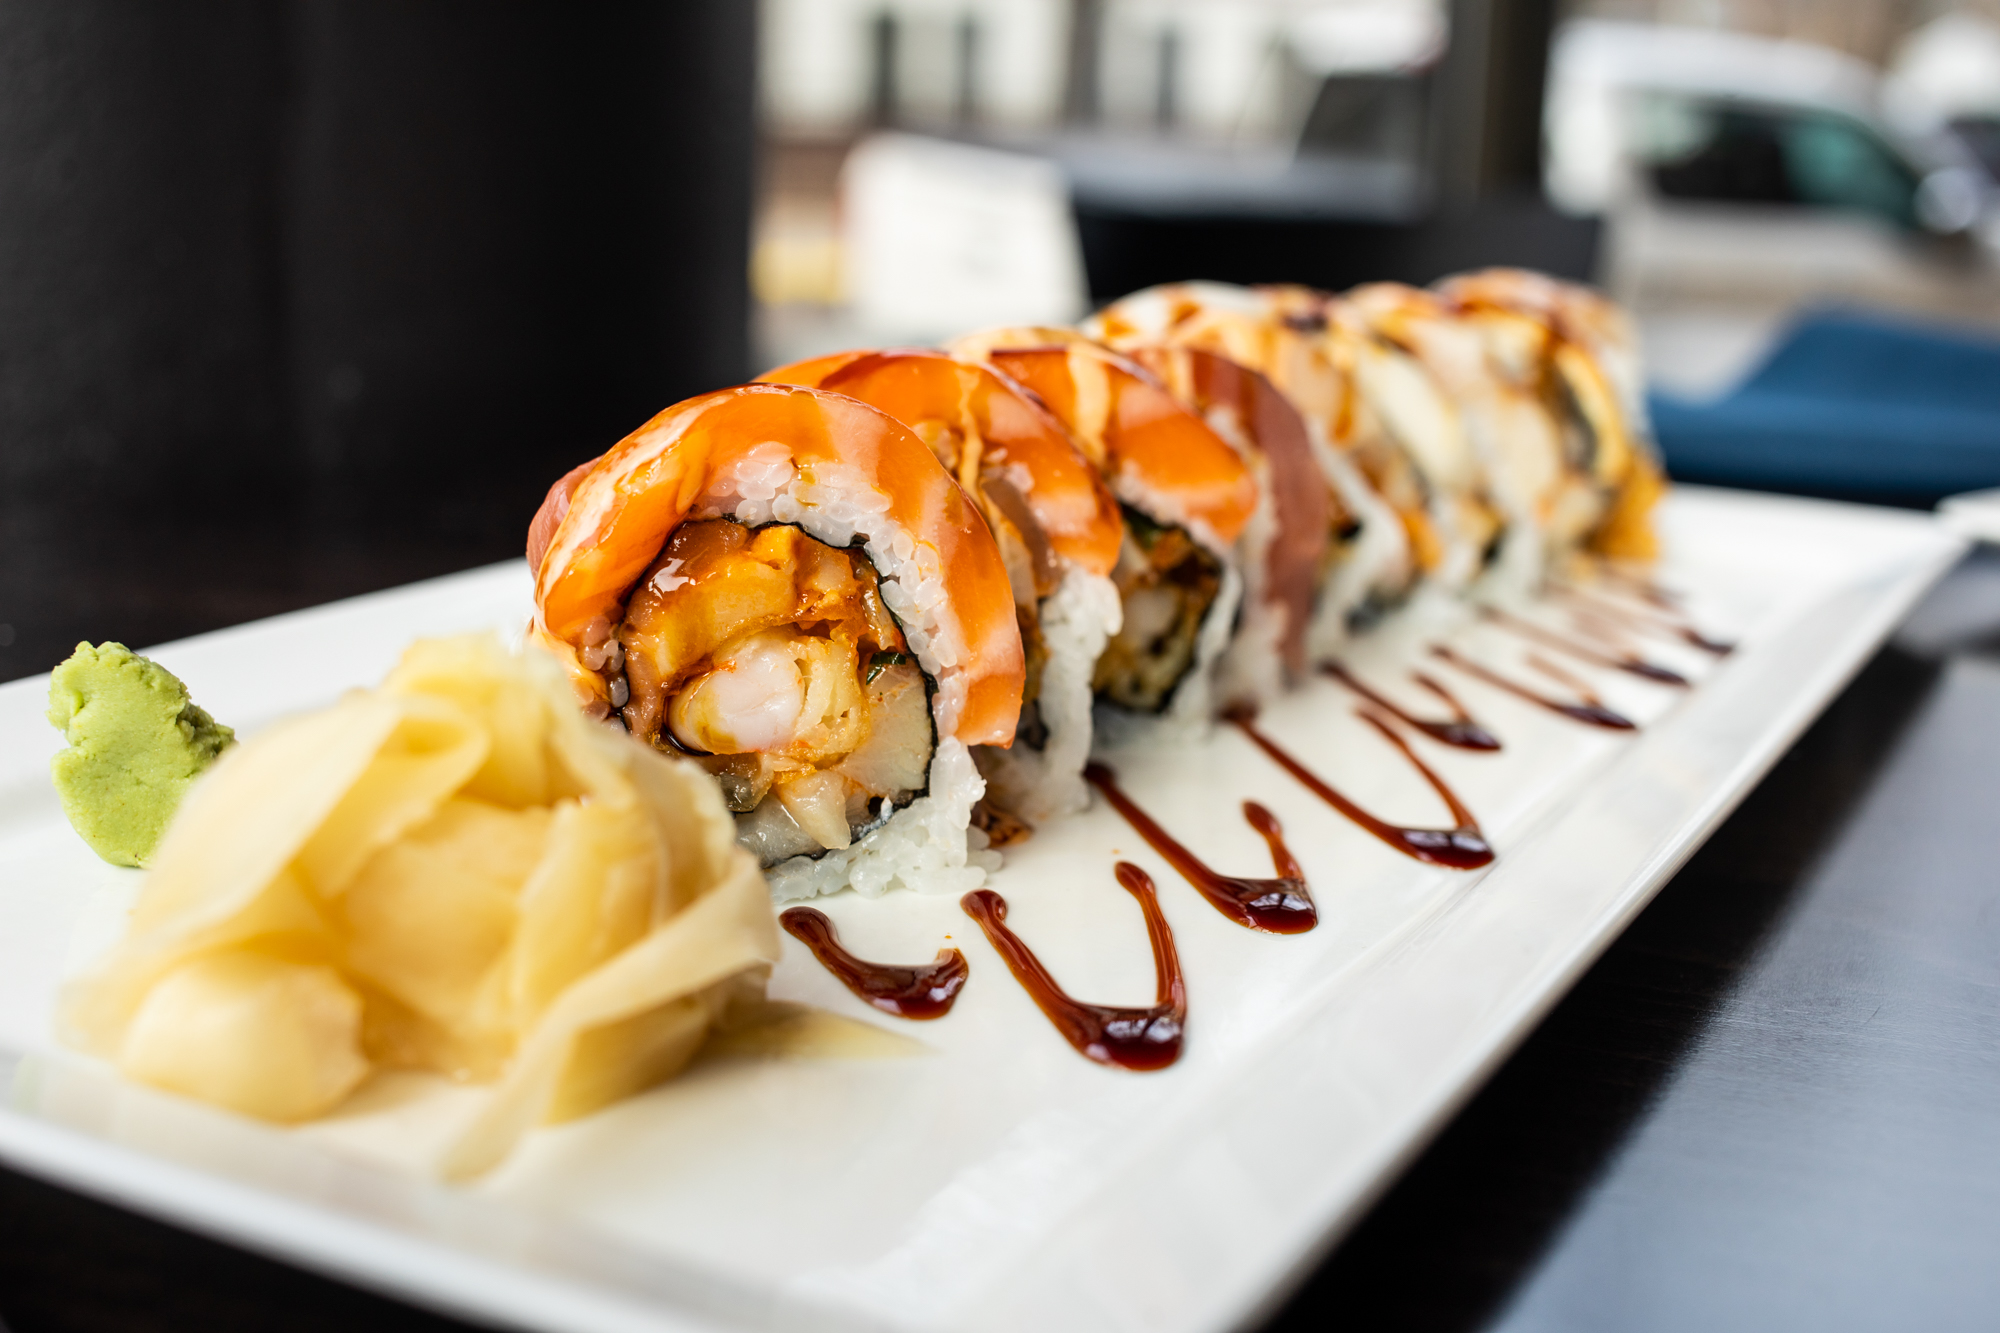 The sushi is quantifiably bigger at Yumi, the new restaurant in St. Paul // Photo by Tj Turner